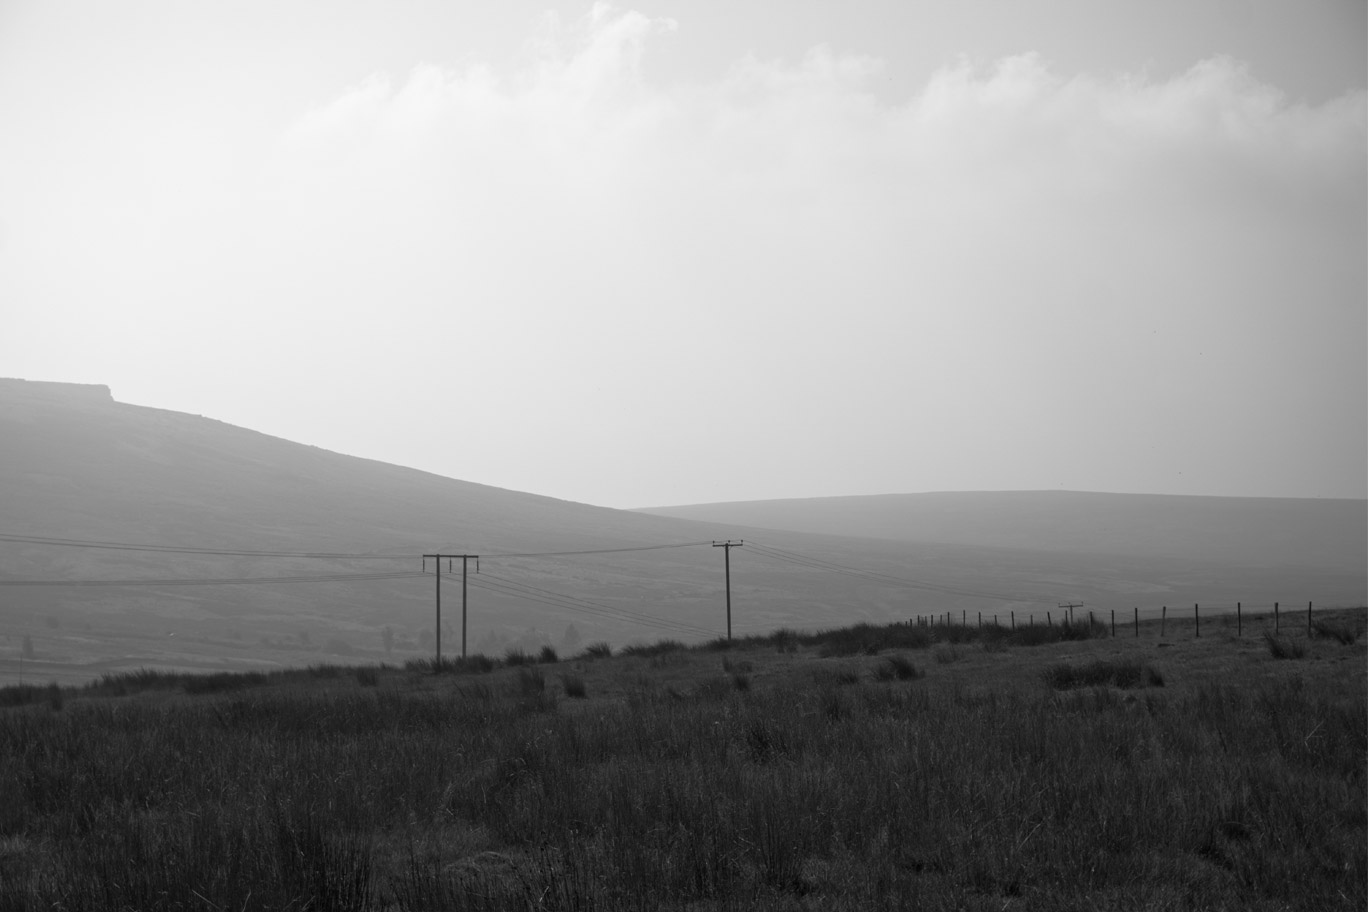 Black and white image of pylons through the countryside